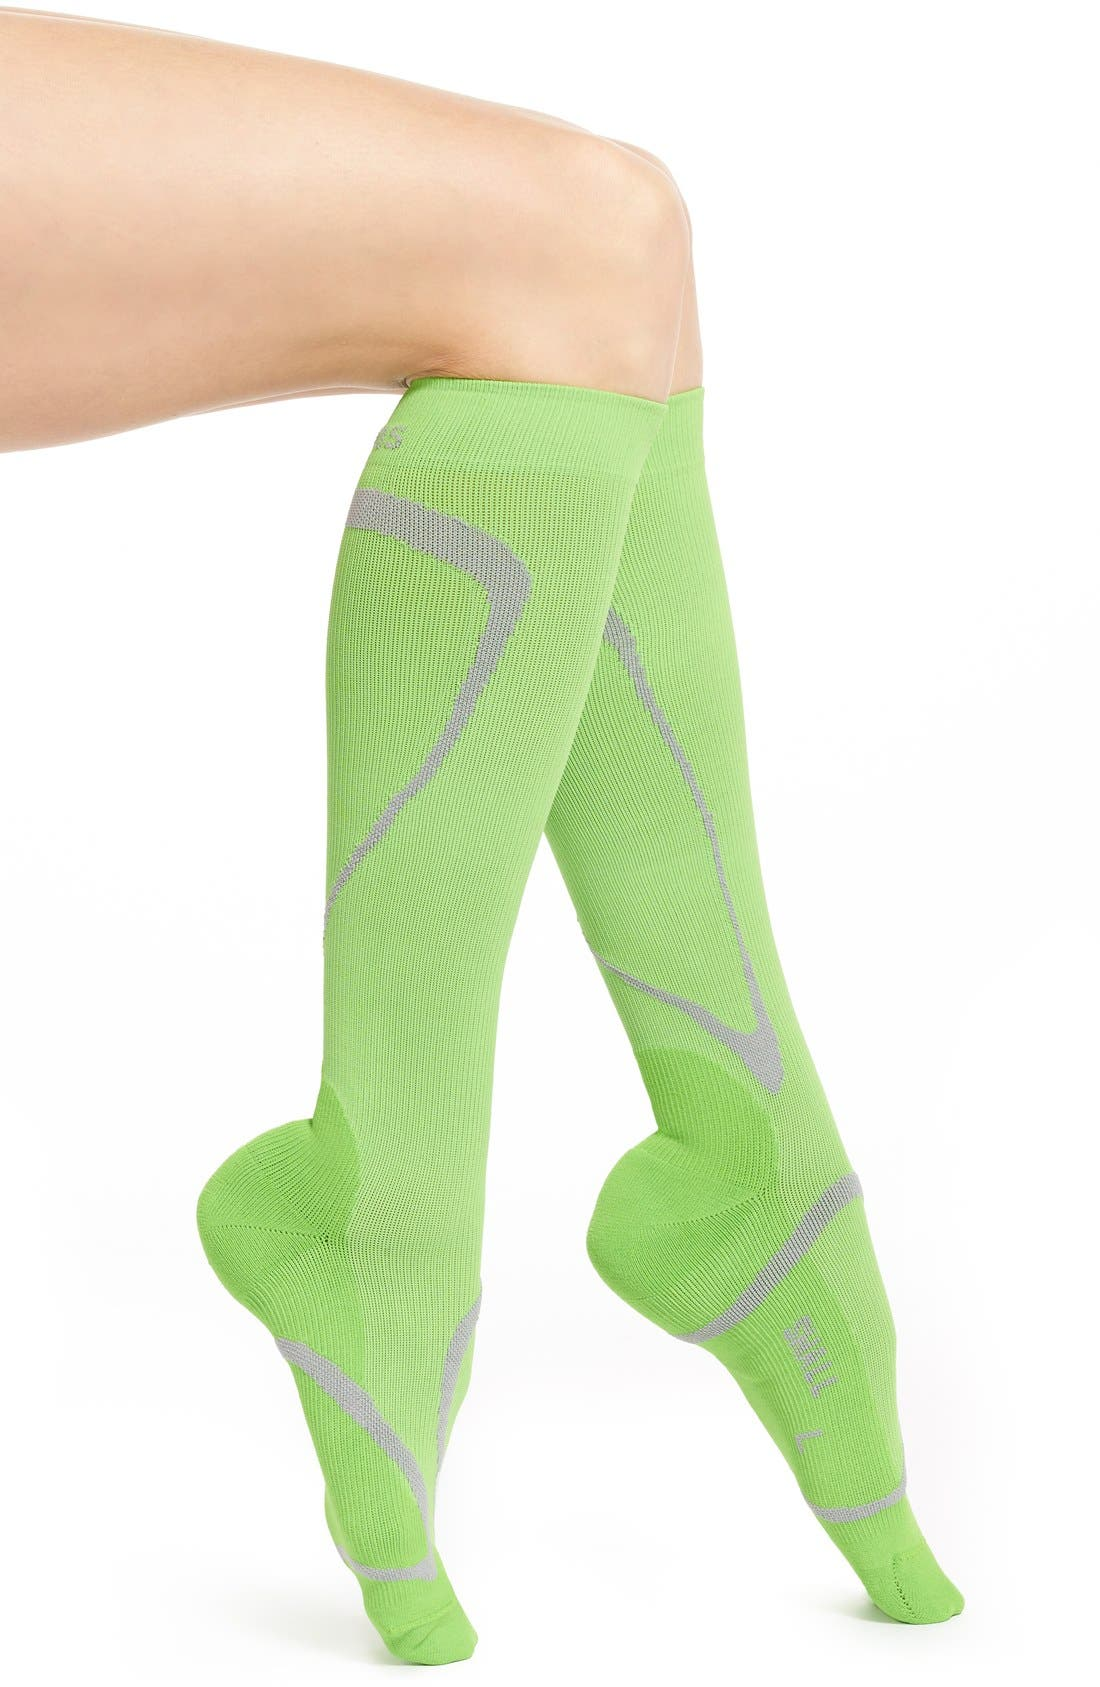 Performance Compression Knee High Socks,                         Main,                         color, LIME